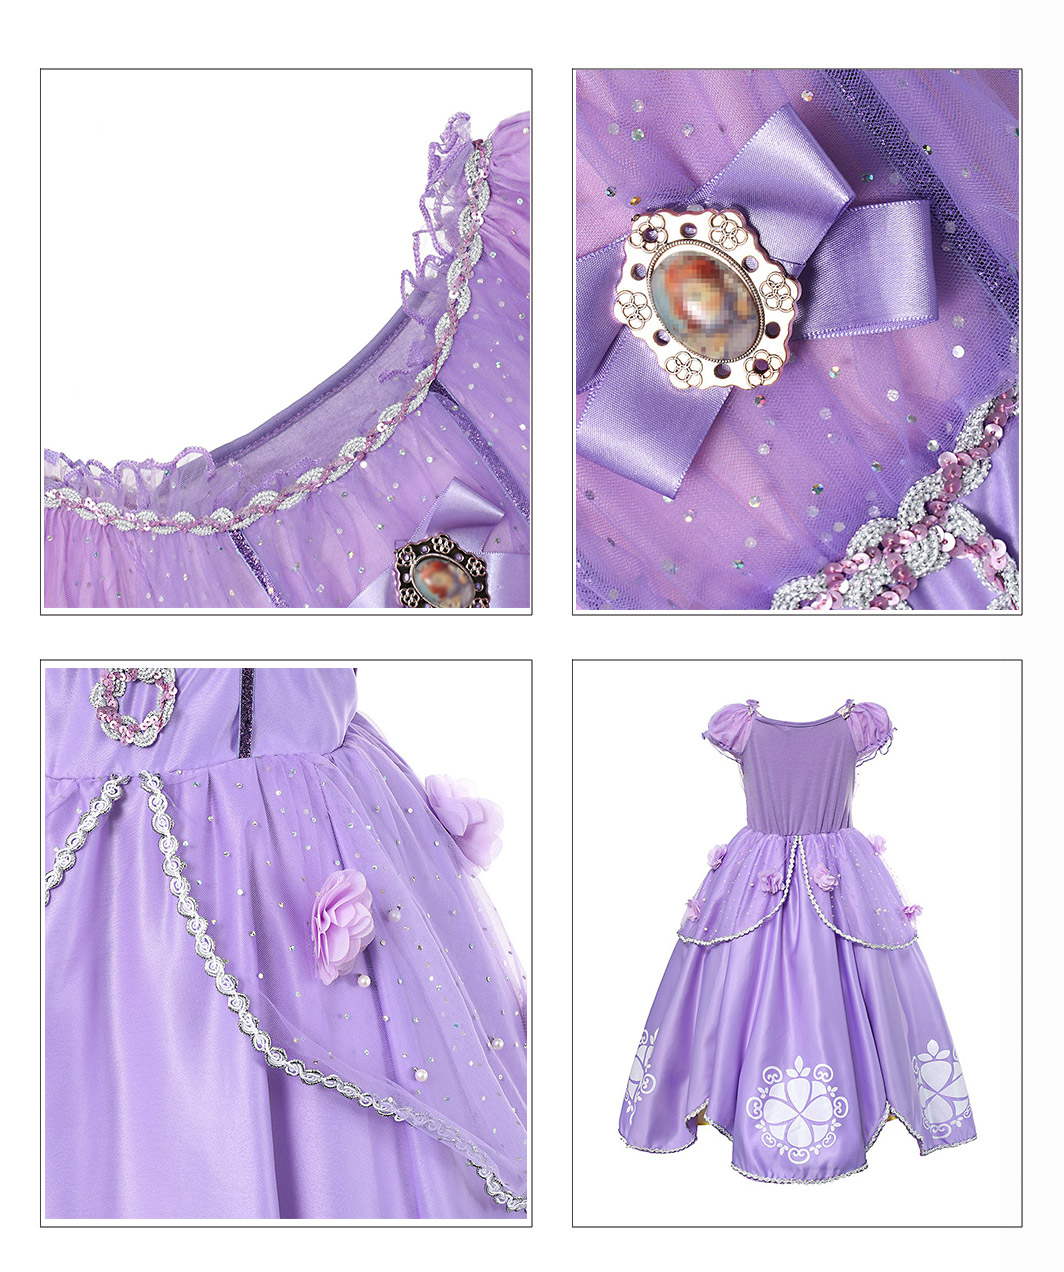 He1af60f4c1144574bc5a2aedbb826430q - Fancy Baby Girl Princess Clothes Kid Jasmine Rapunzel Aurora Belle Ariel Cosplay Costume Child Elsa Anna Elena Sofia Party Dress